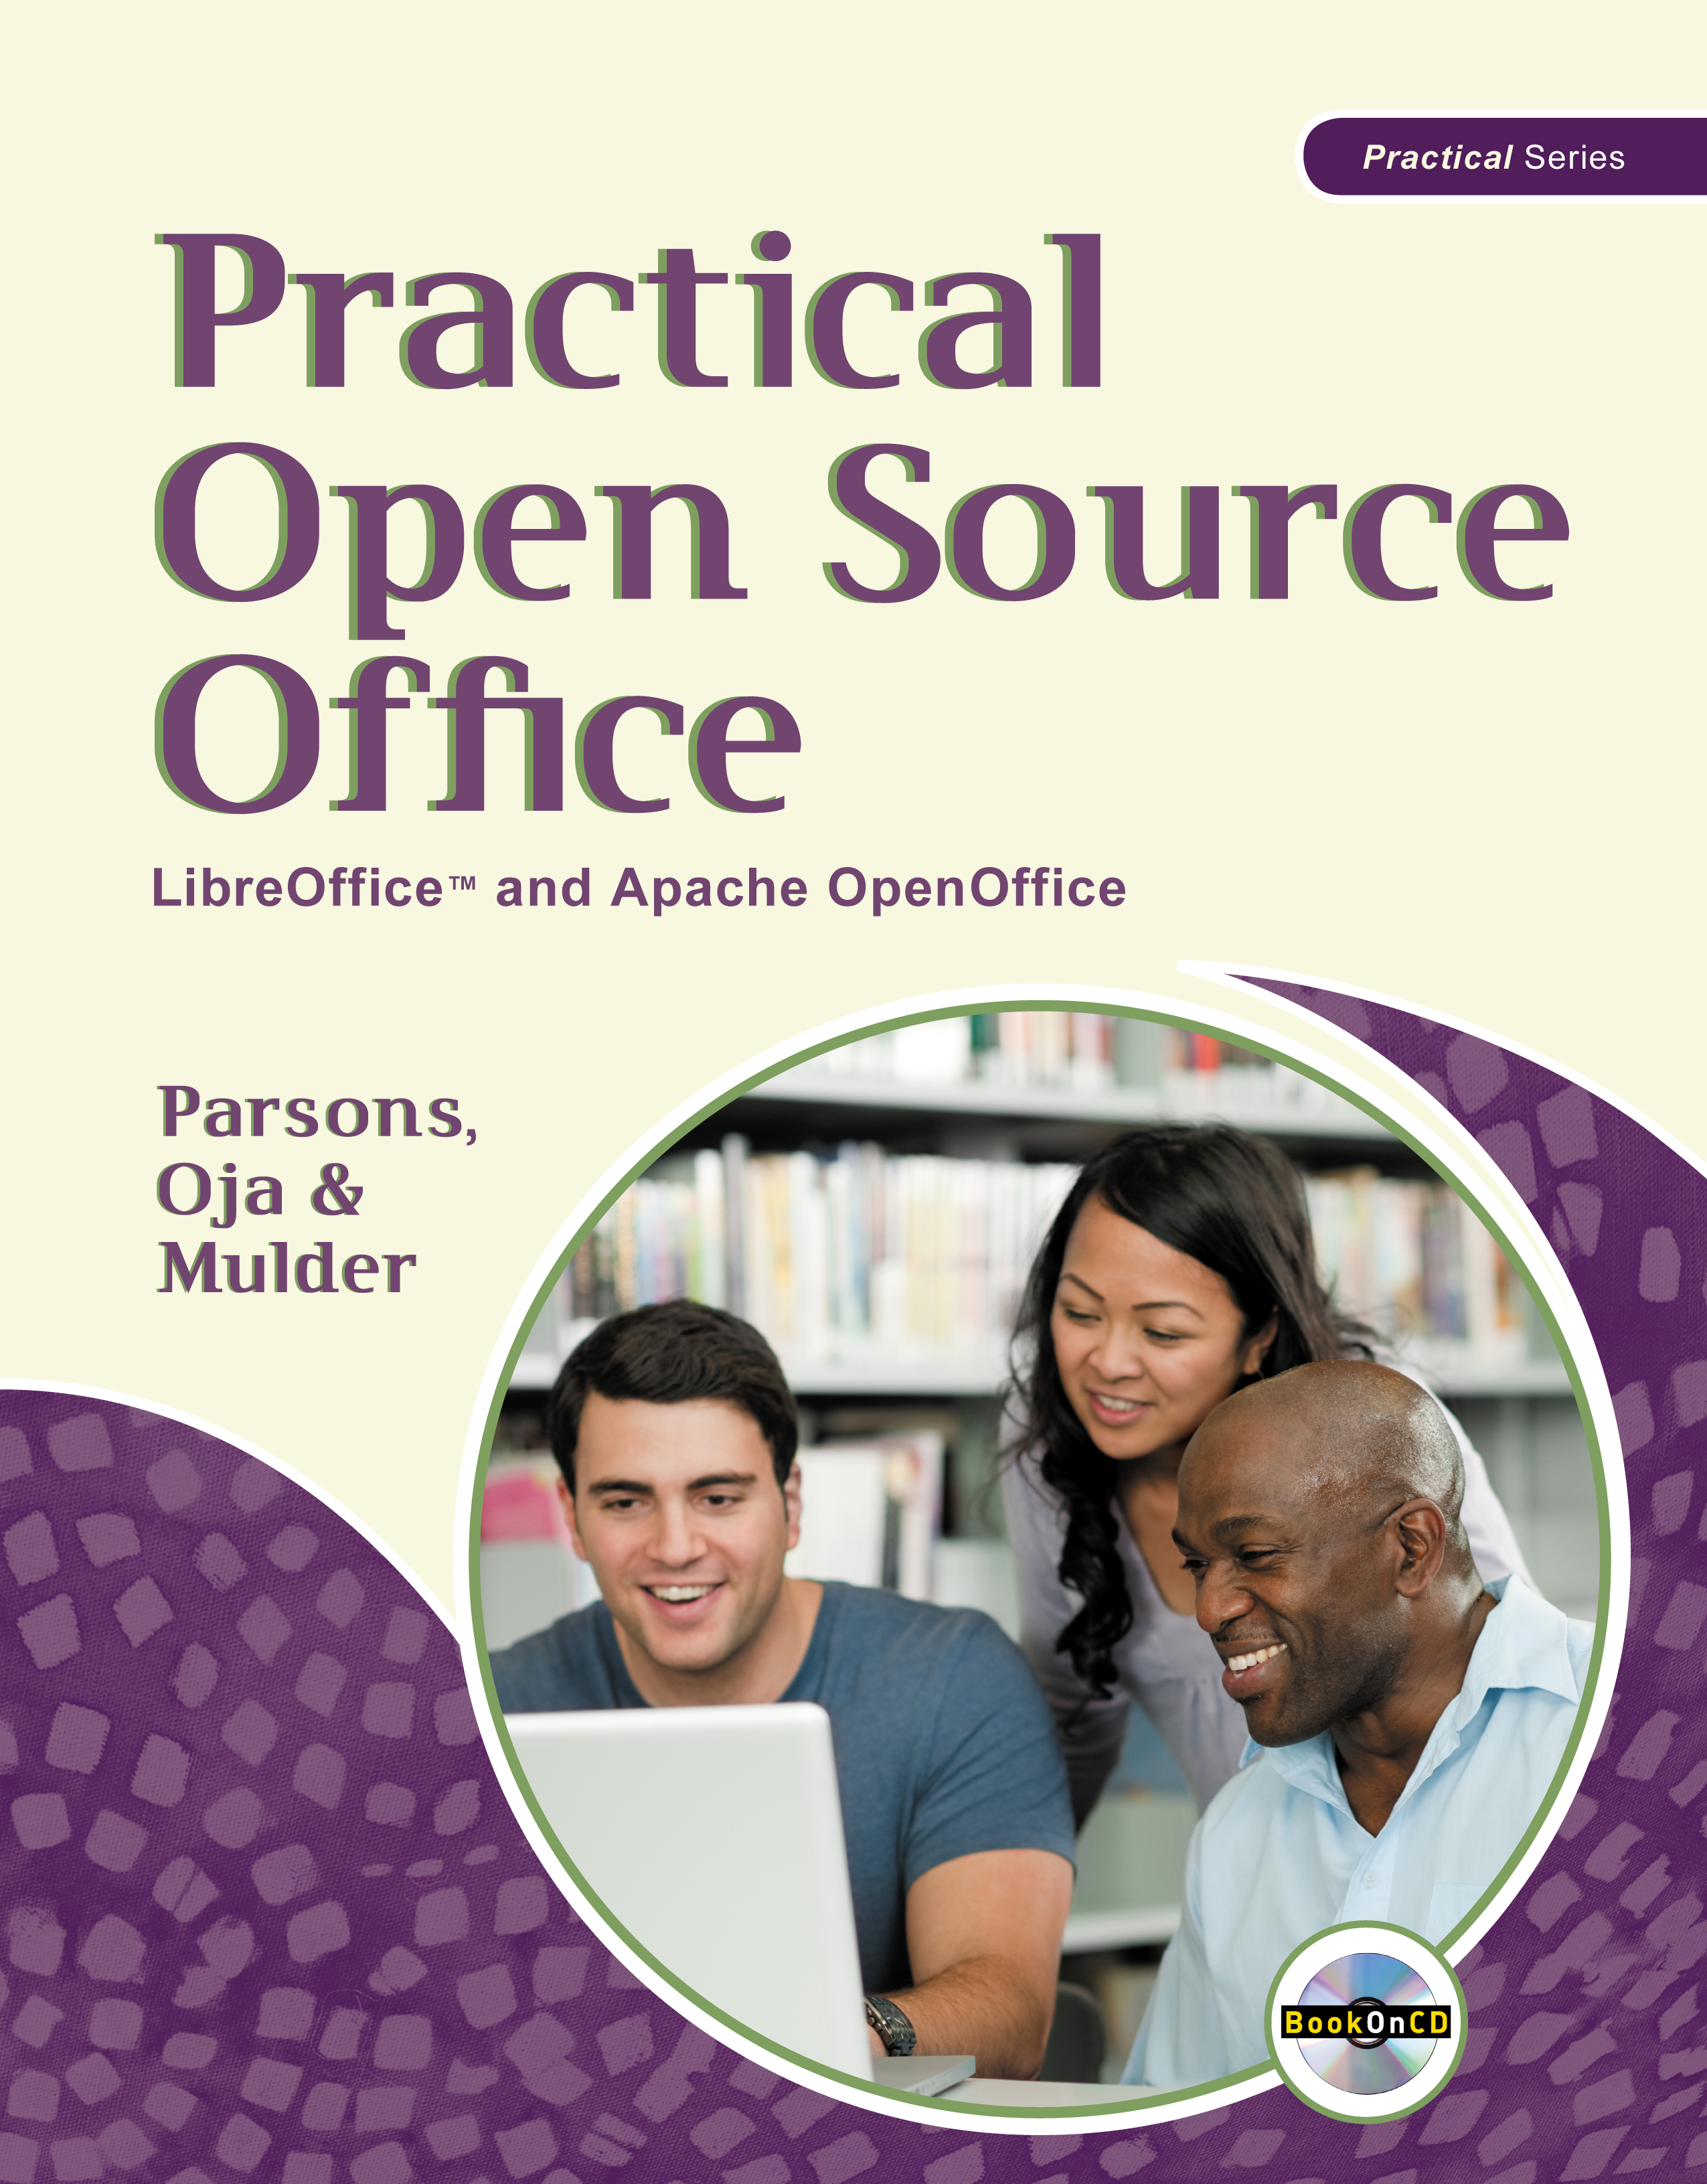 Practical Open Source Office